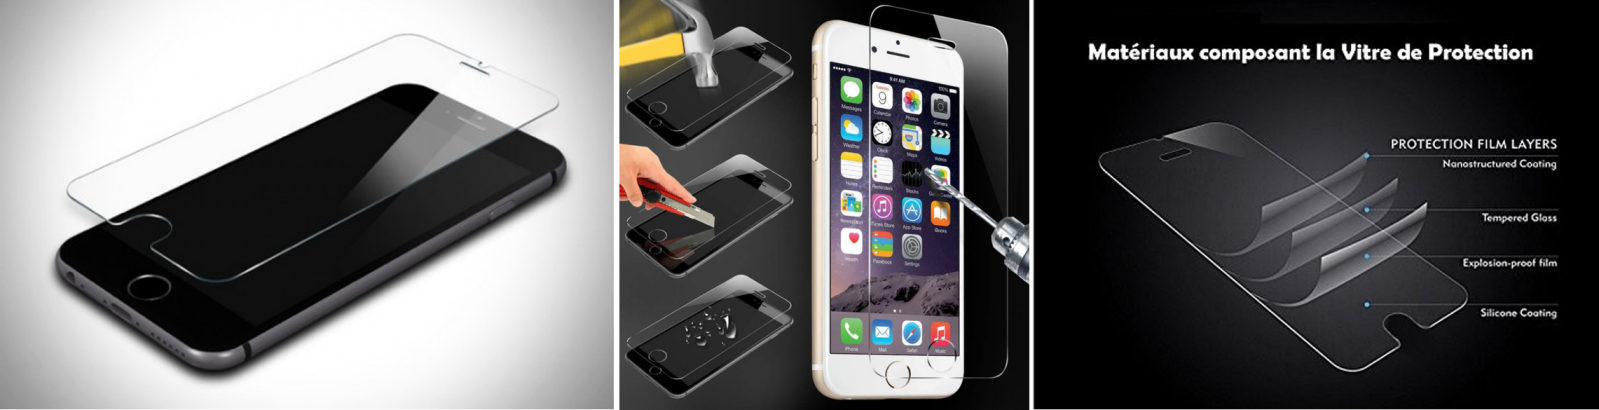 FILM DE PROTECTION ANTI CASSE ANTI RAYURES EN VERRE TREMPE POUR IPHONE 6